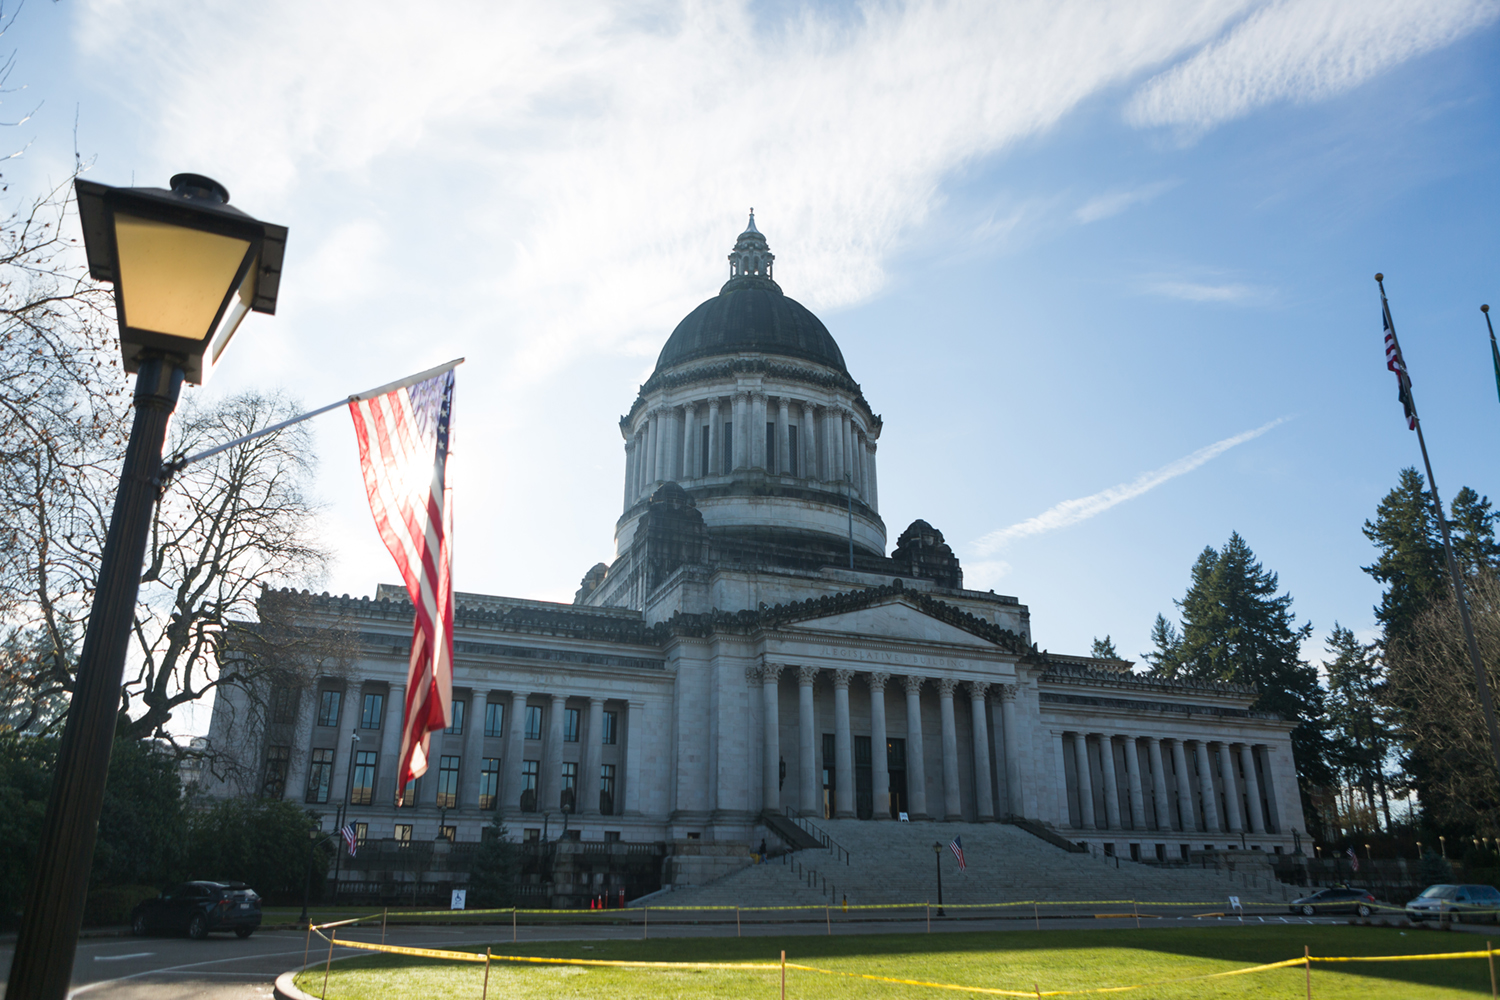 Pic of Washington State capitol